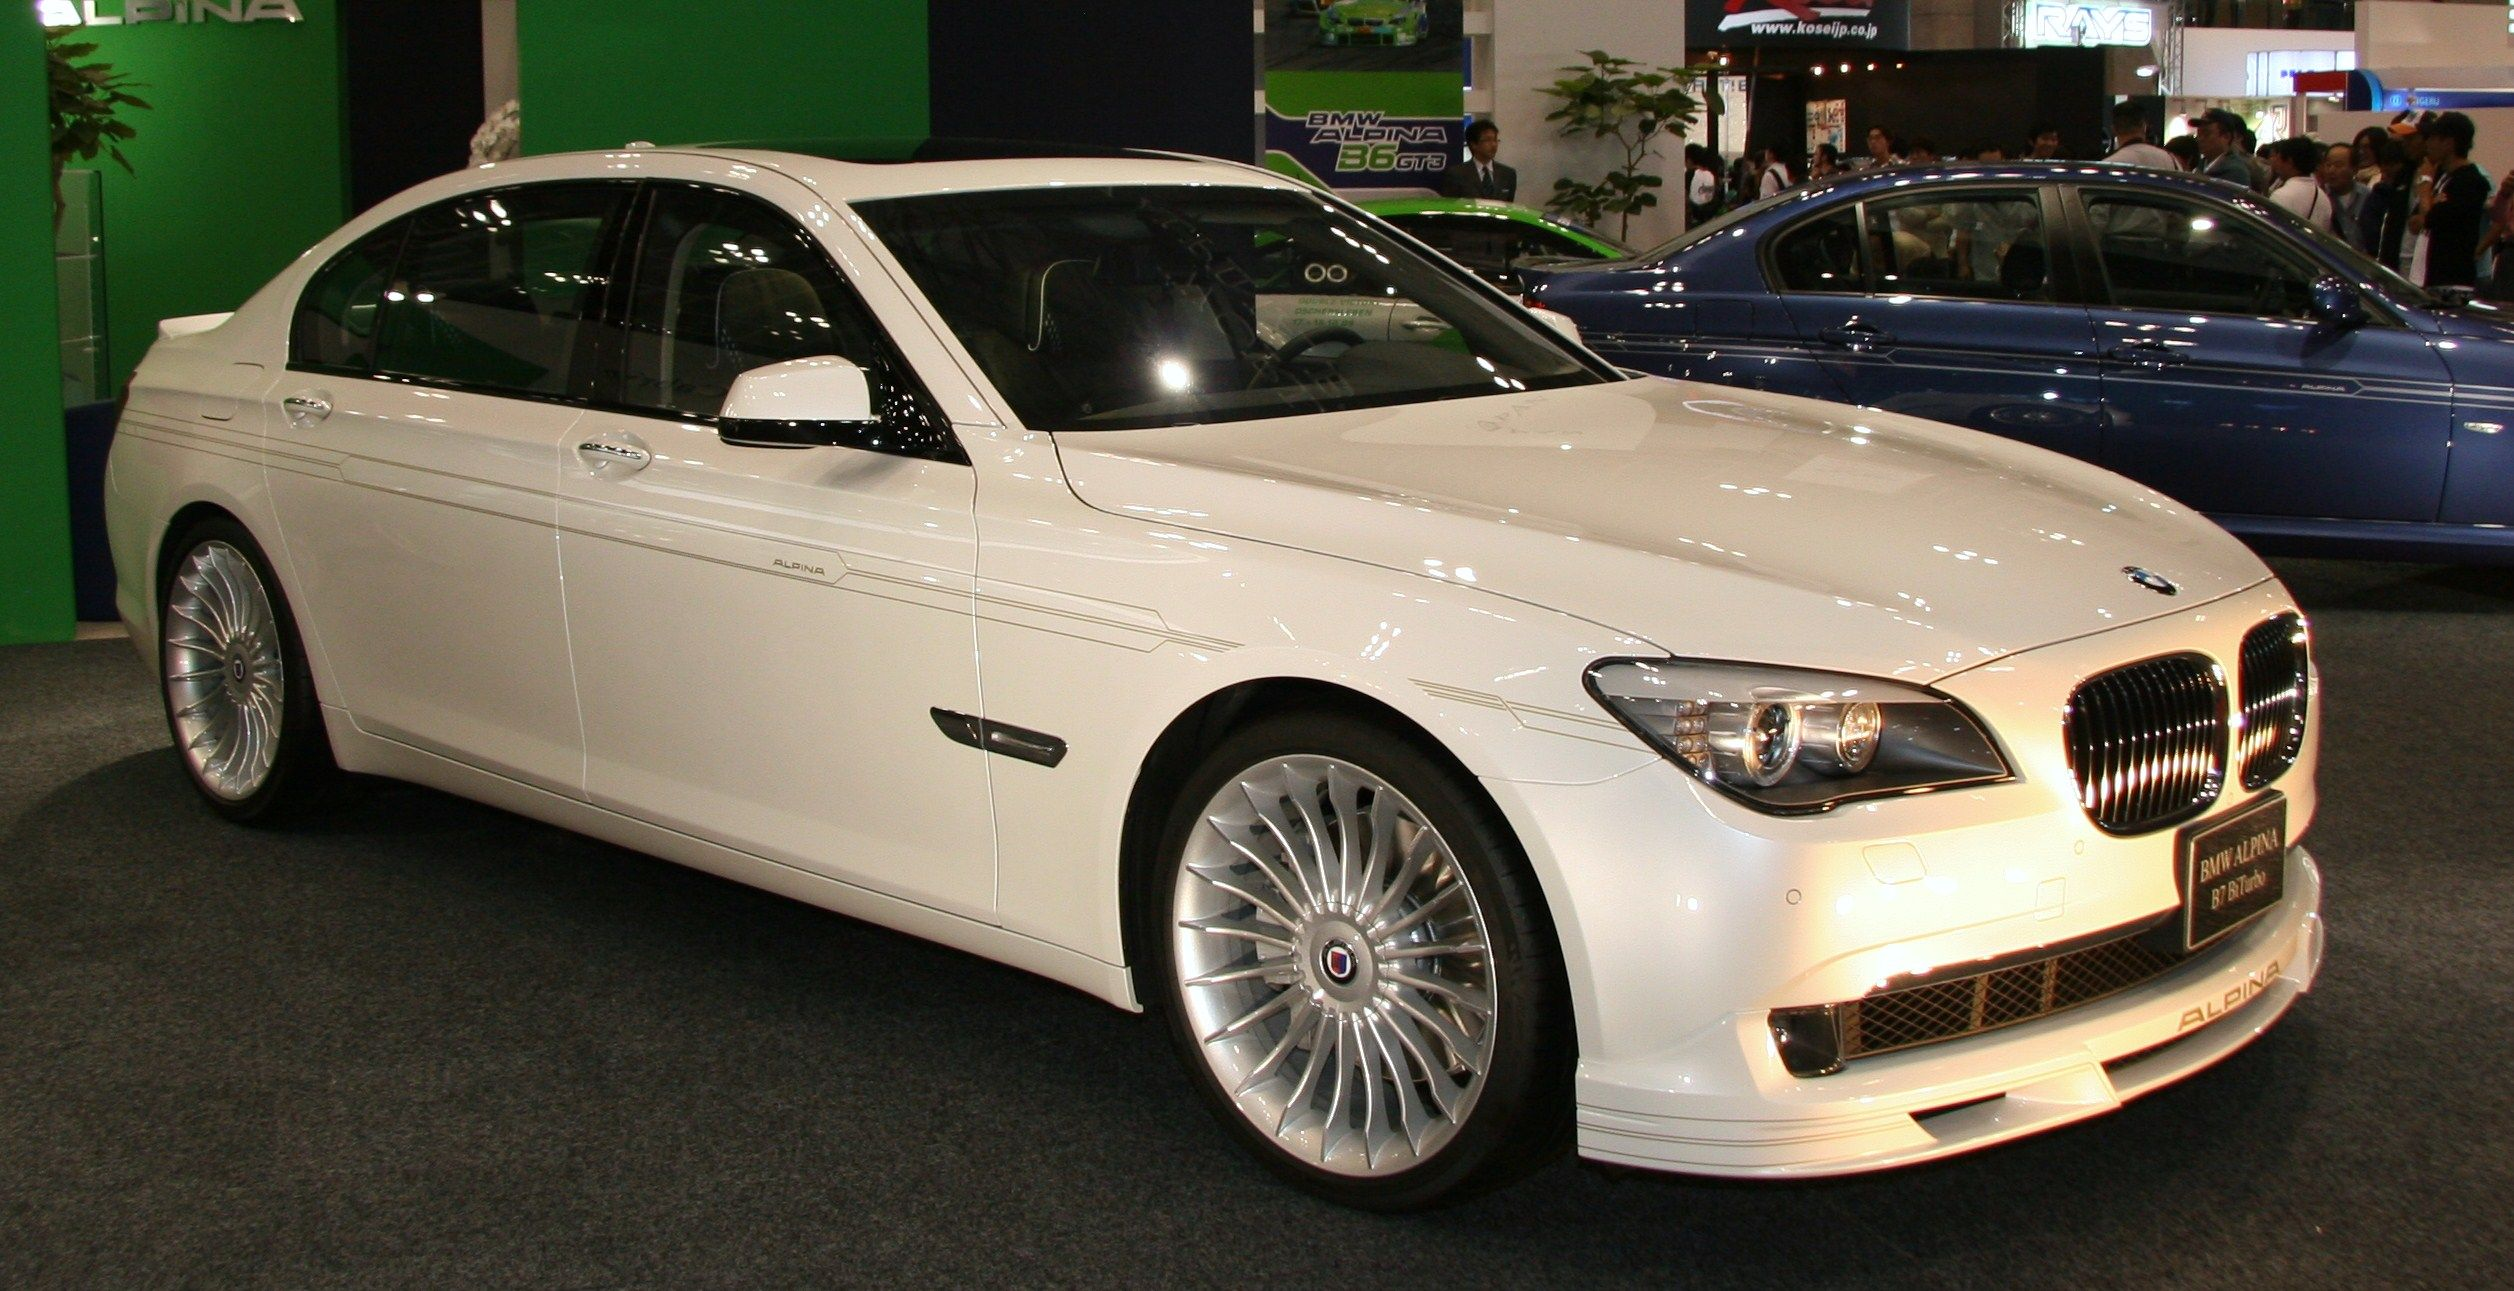 My Dream Car - The BMW Alpina B7 | Attraction Adventures | Pinterest ...